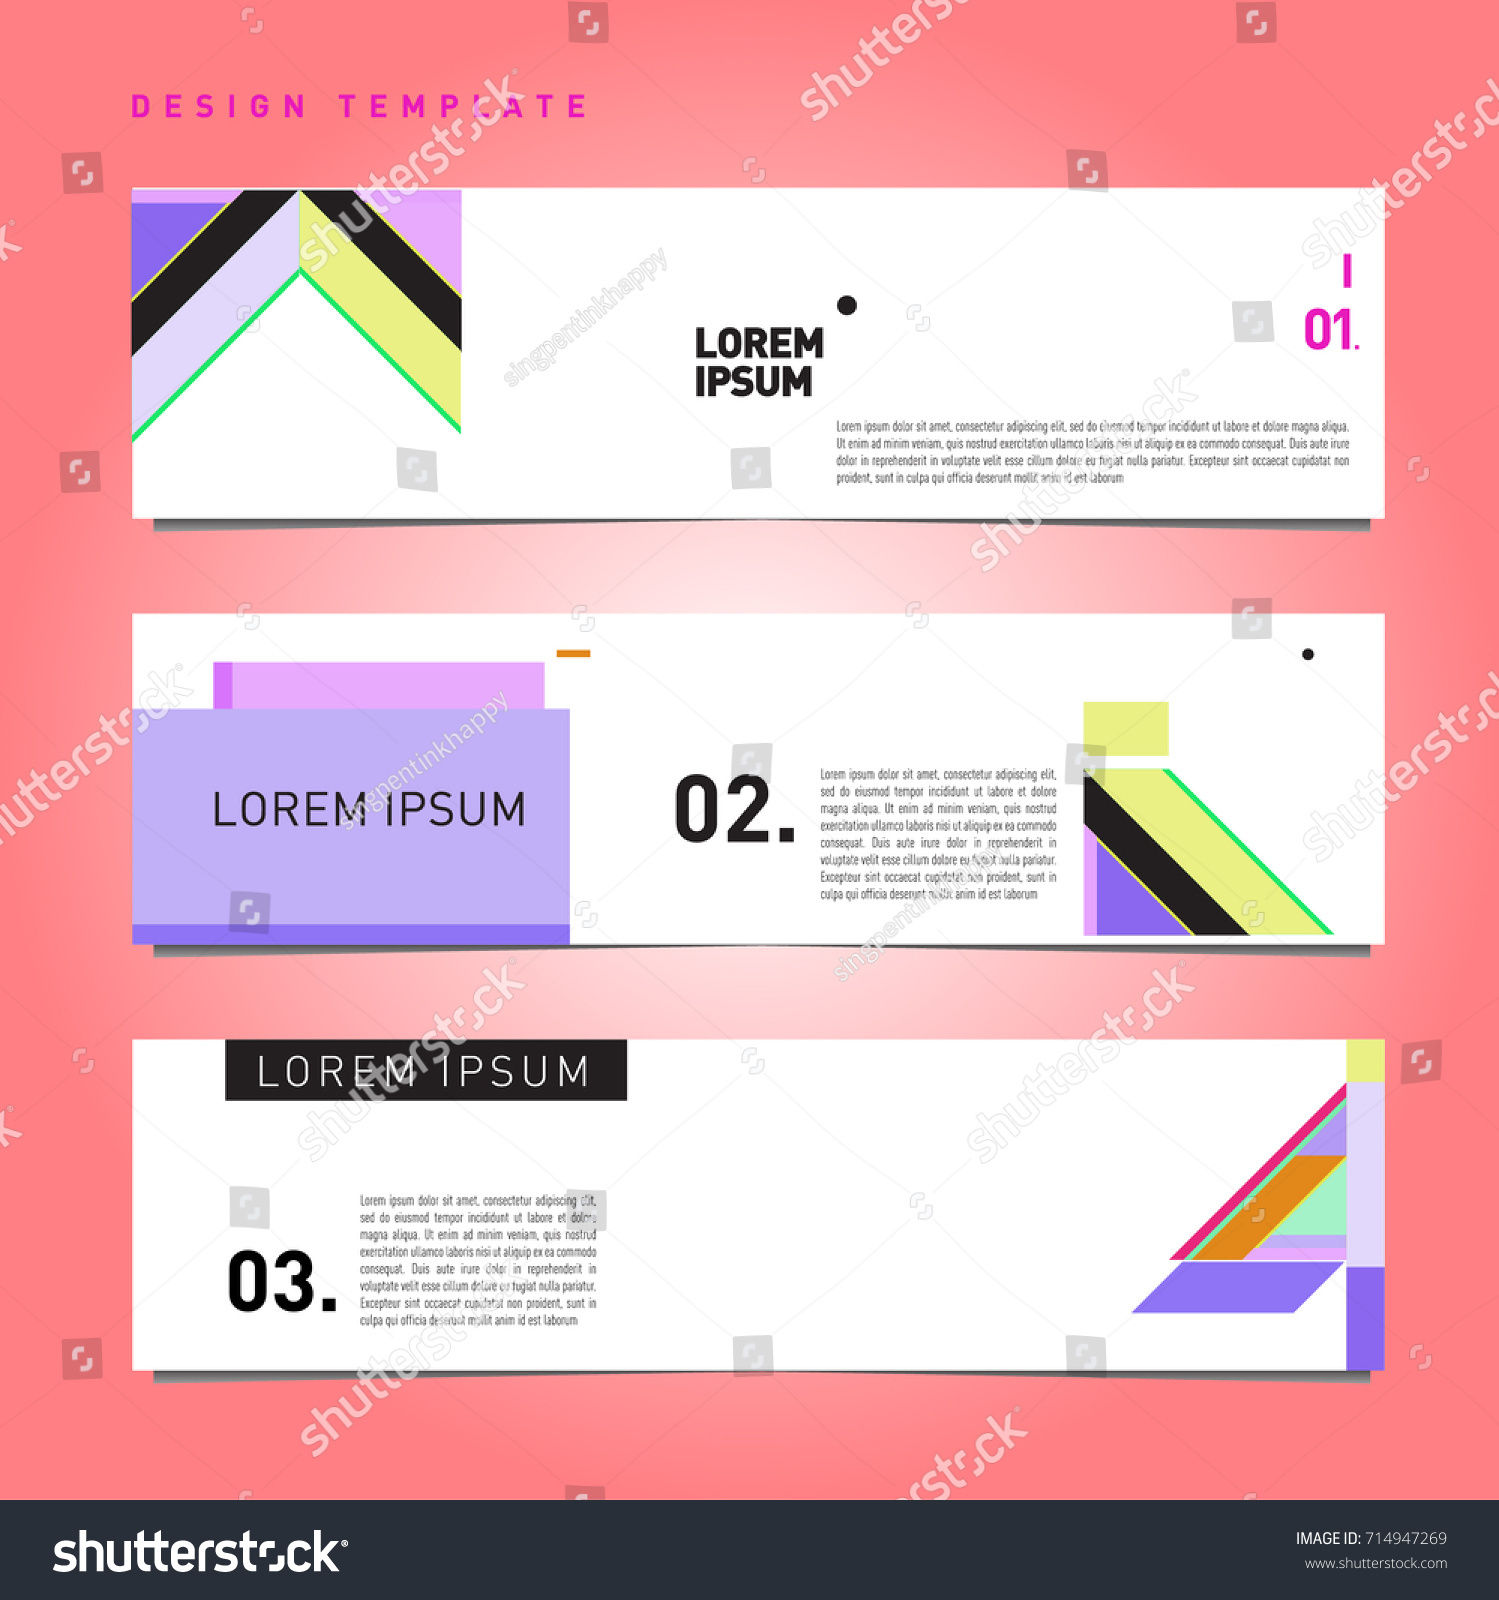 Design banner template - Vector Abstract Design Banner Web Template Retro And Pop Art Colorful Banner Layout